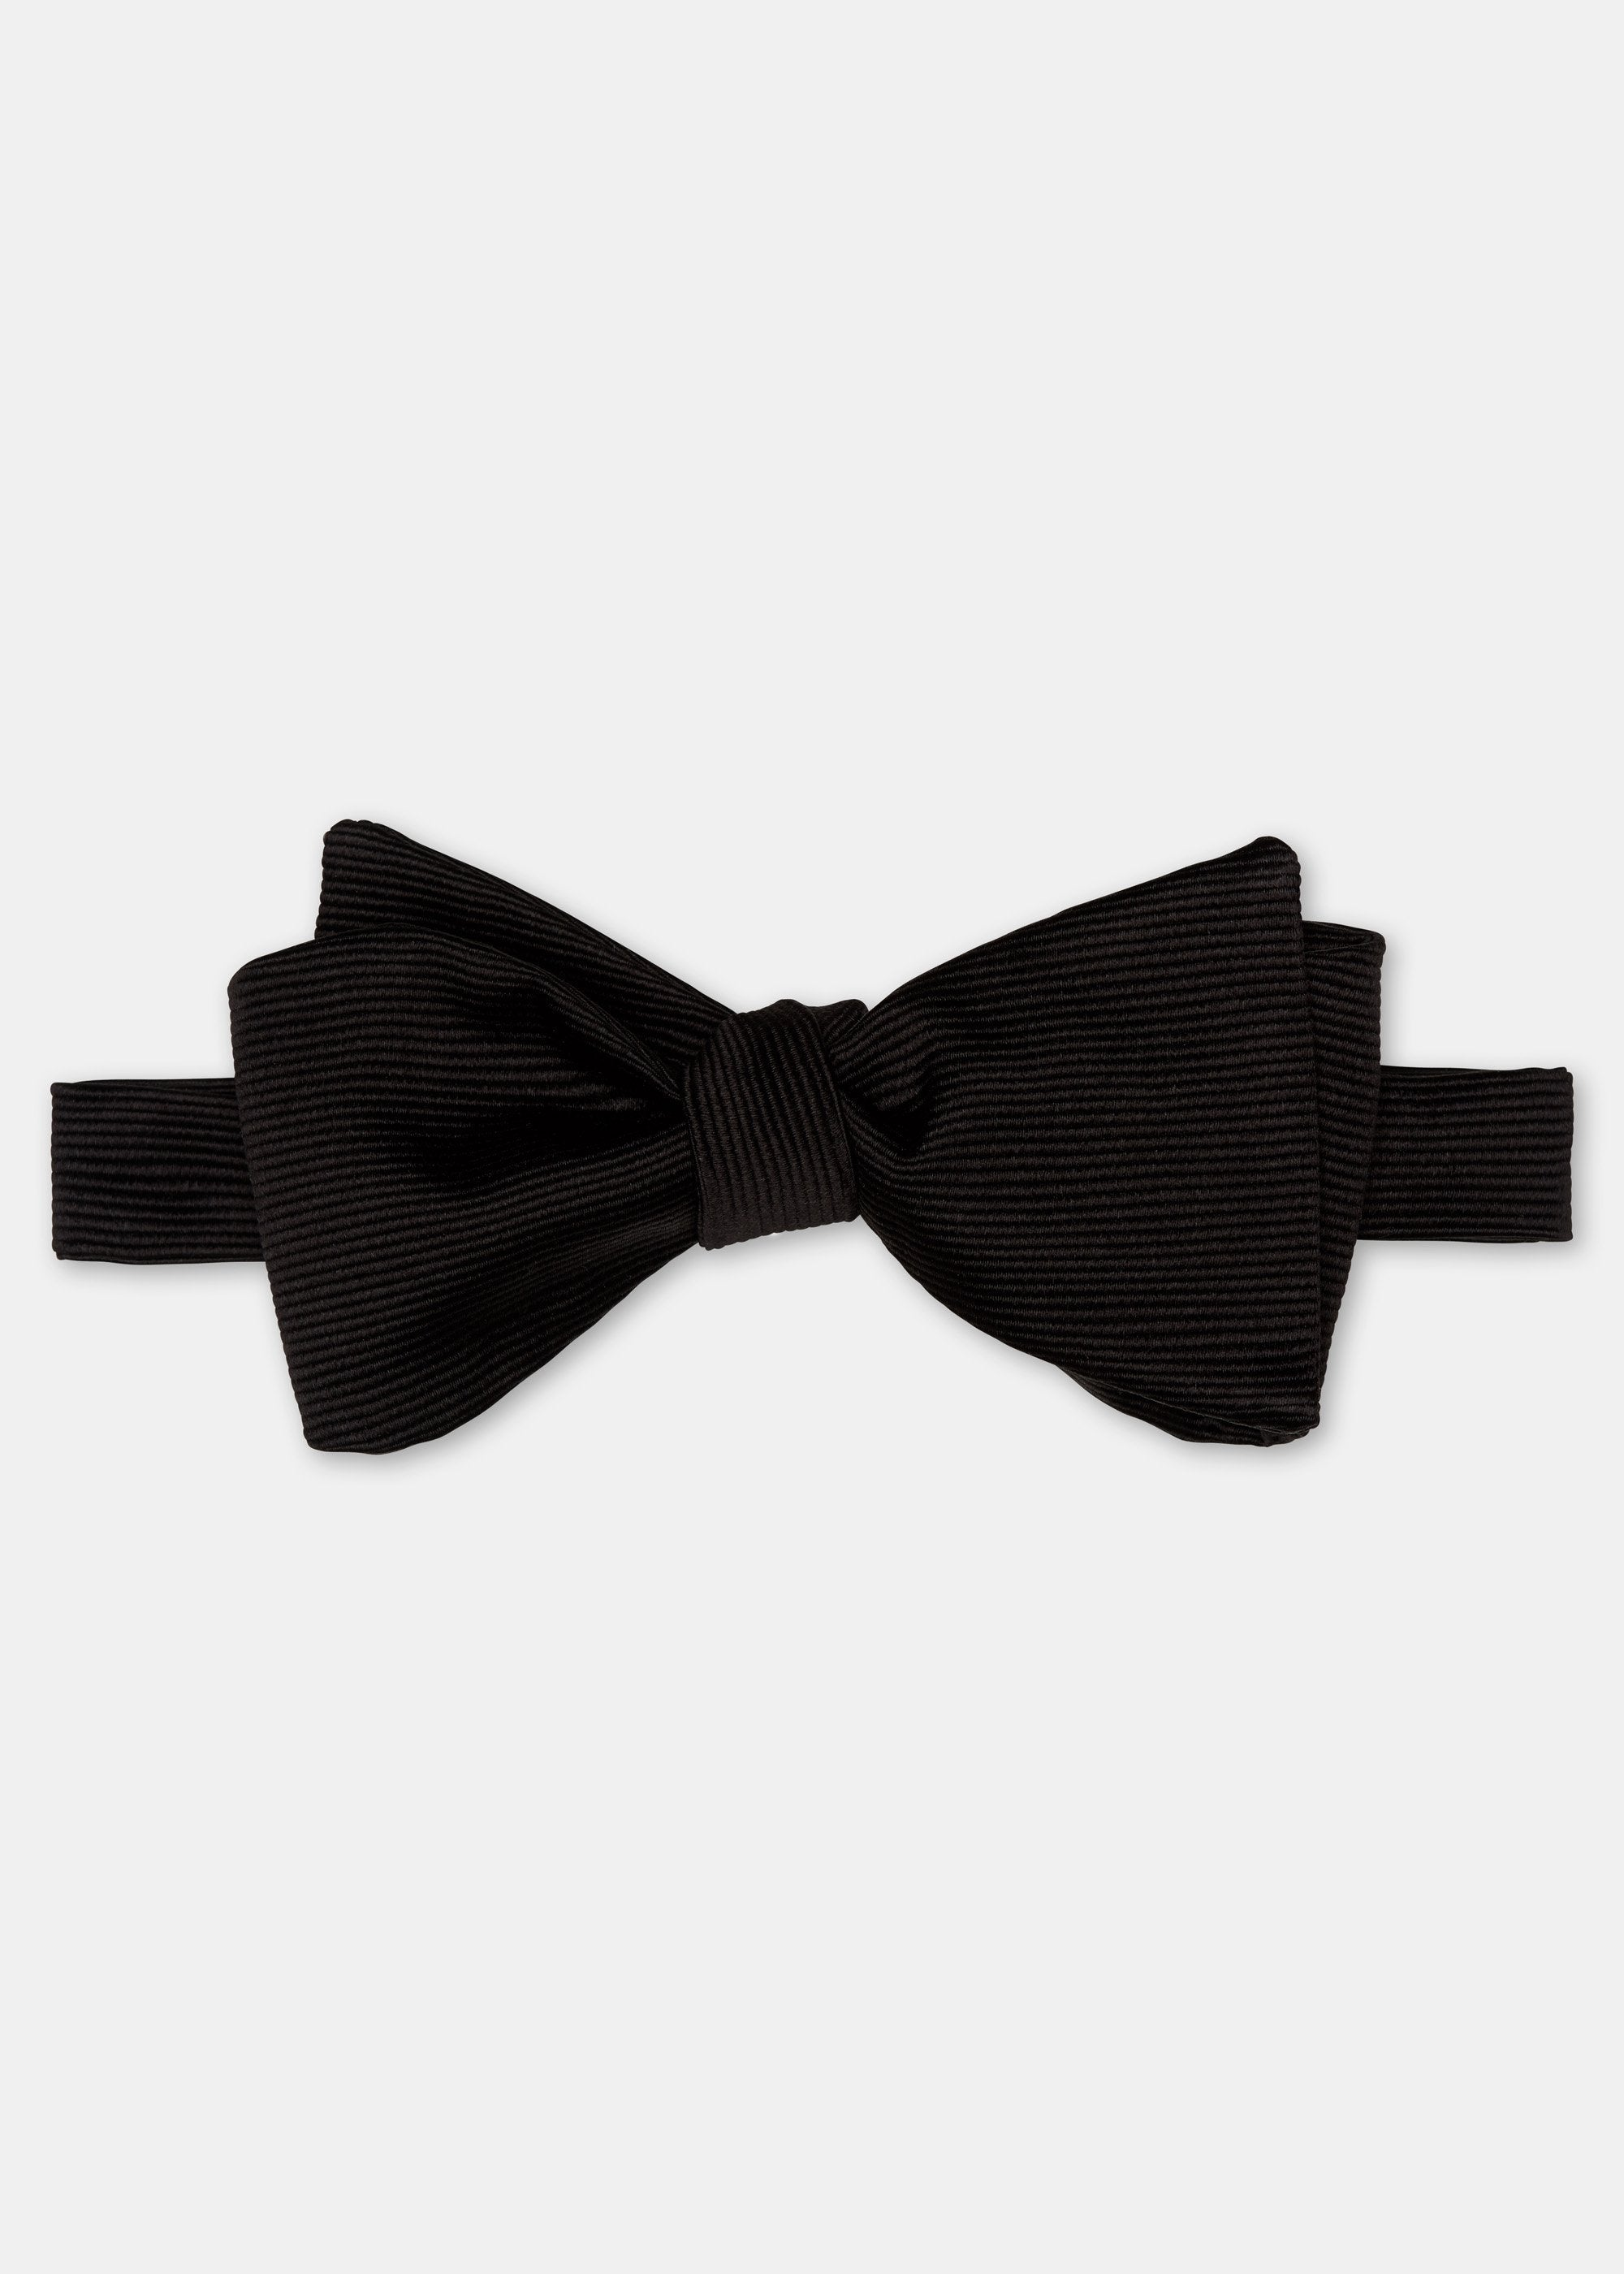 Silk Gross Grain Tie-it-Yourself Bow Tie - Black